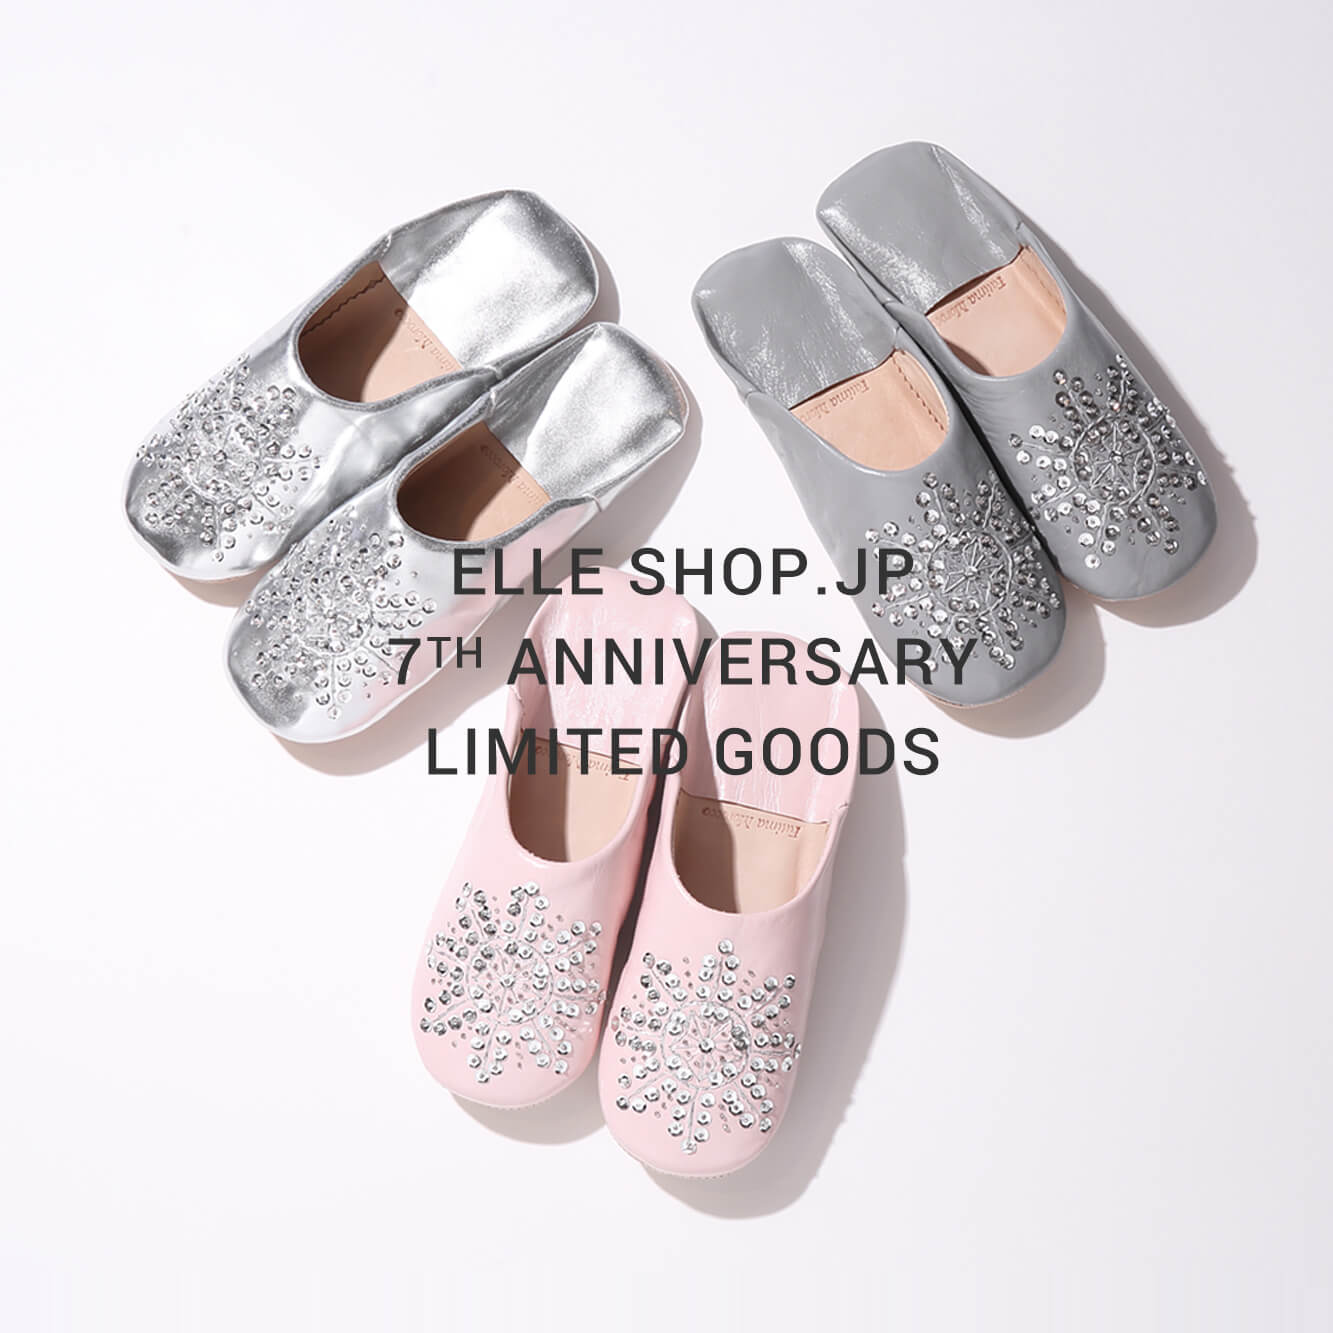 ELLE SHOP.JP 7TH ANNIVERSARY LIMITED GOODS